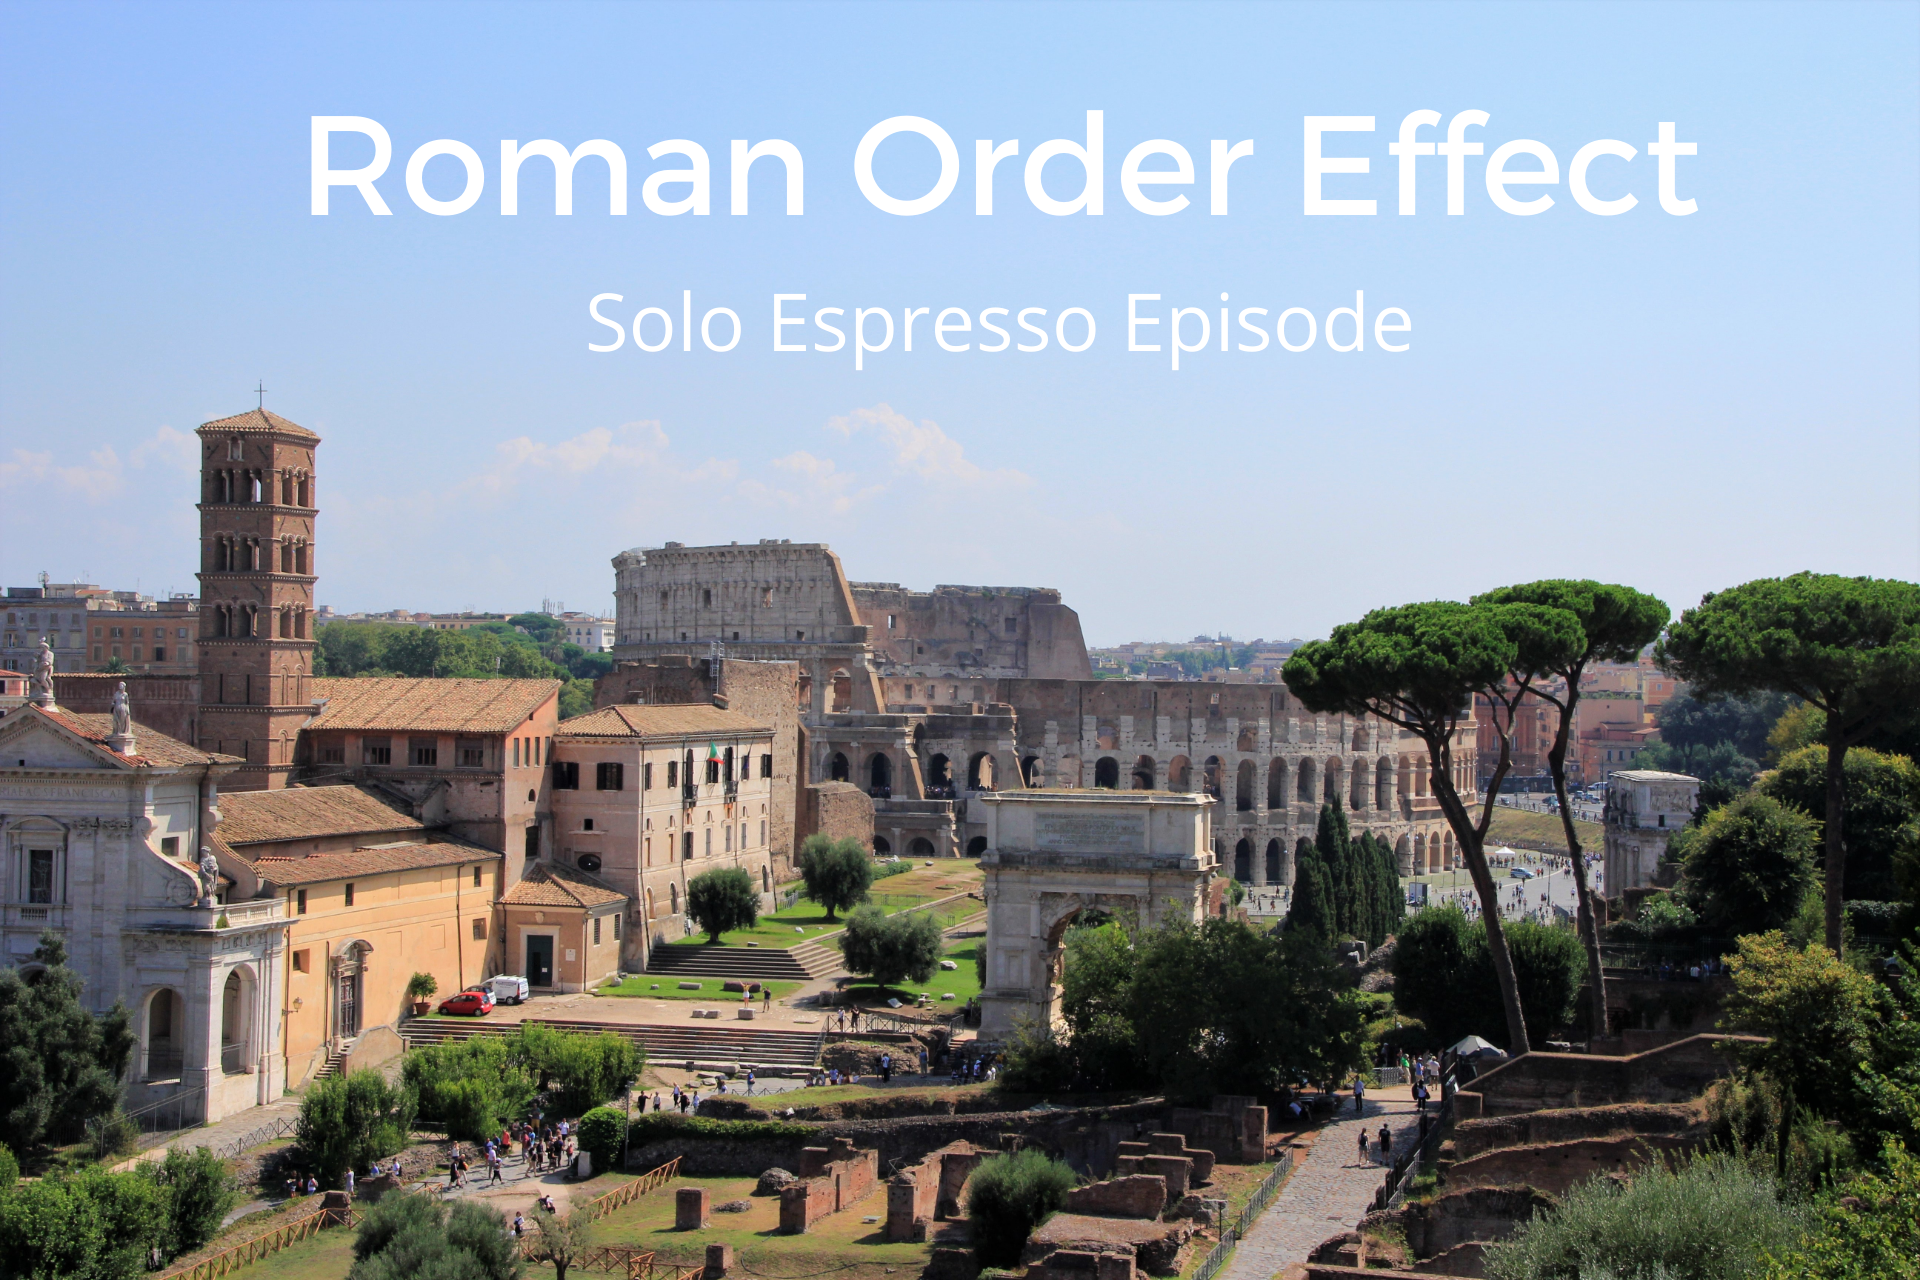 Roman Order Effect (Dealing with Goliath #005)